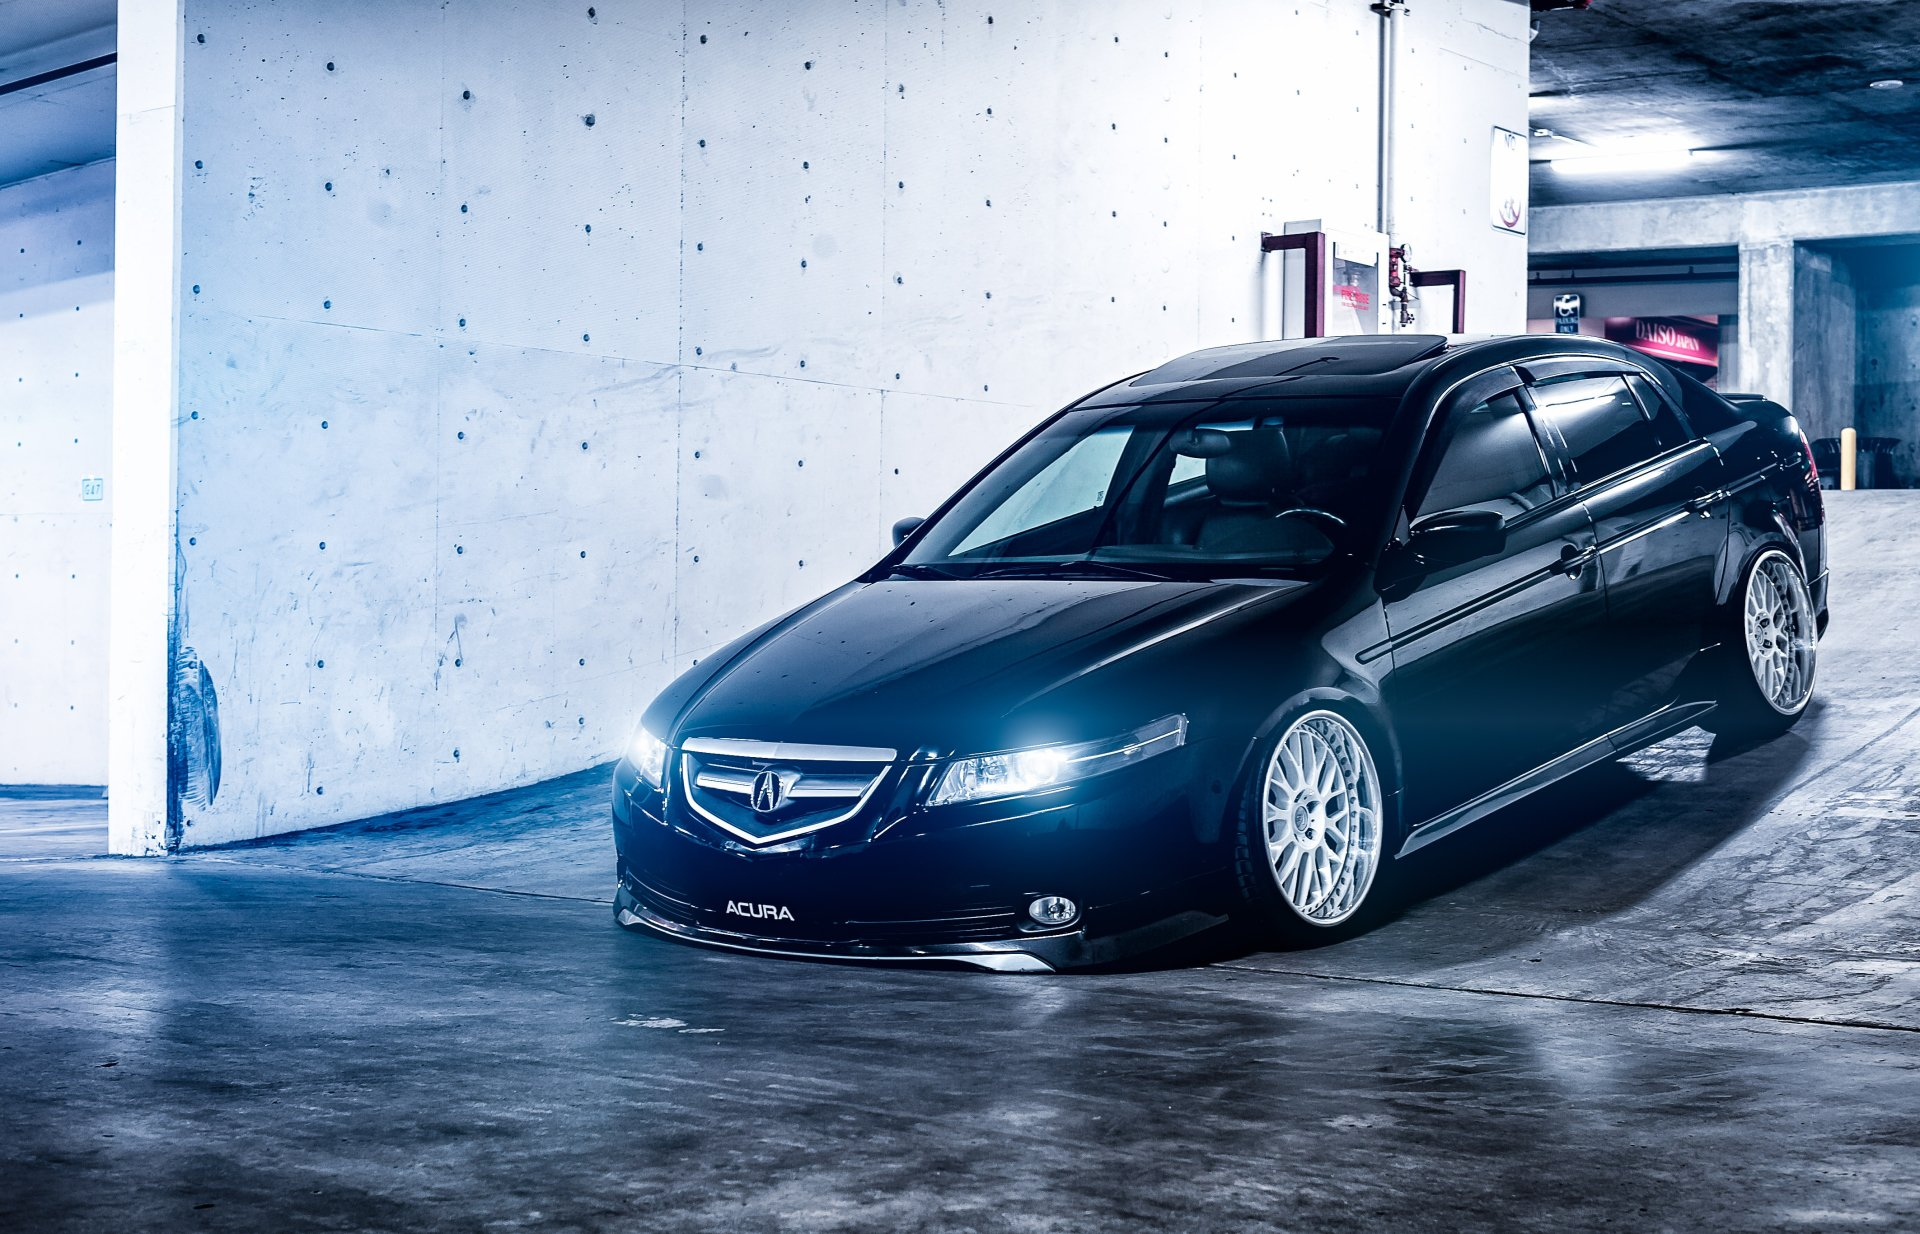 9 Acura Tsx Hd Wallpapers Background Images Wallpaper Abyss